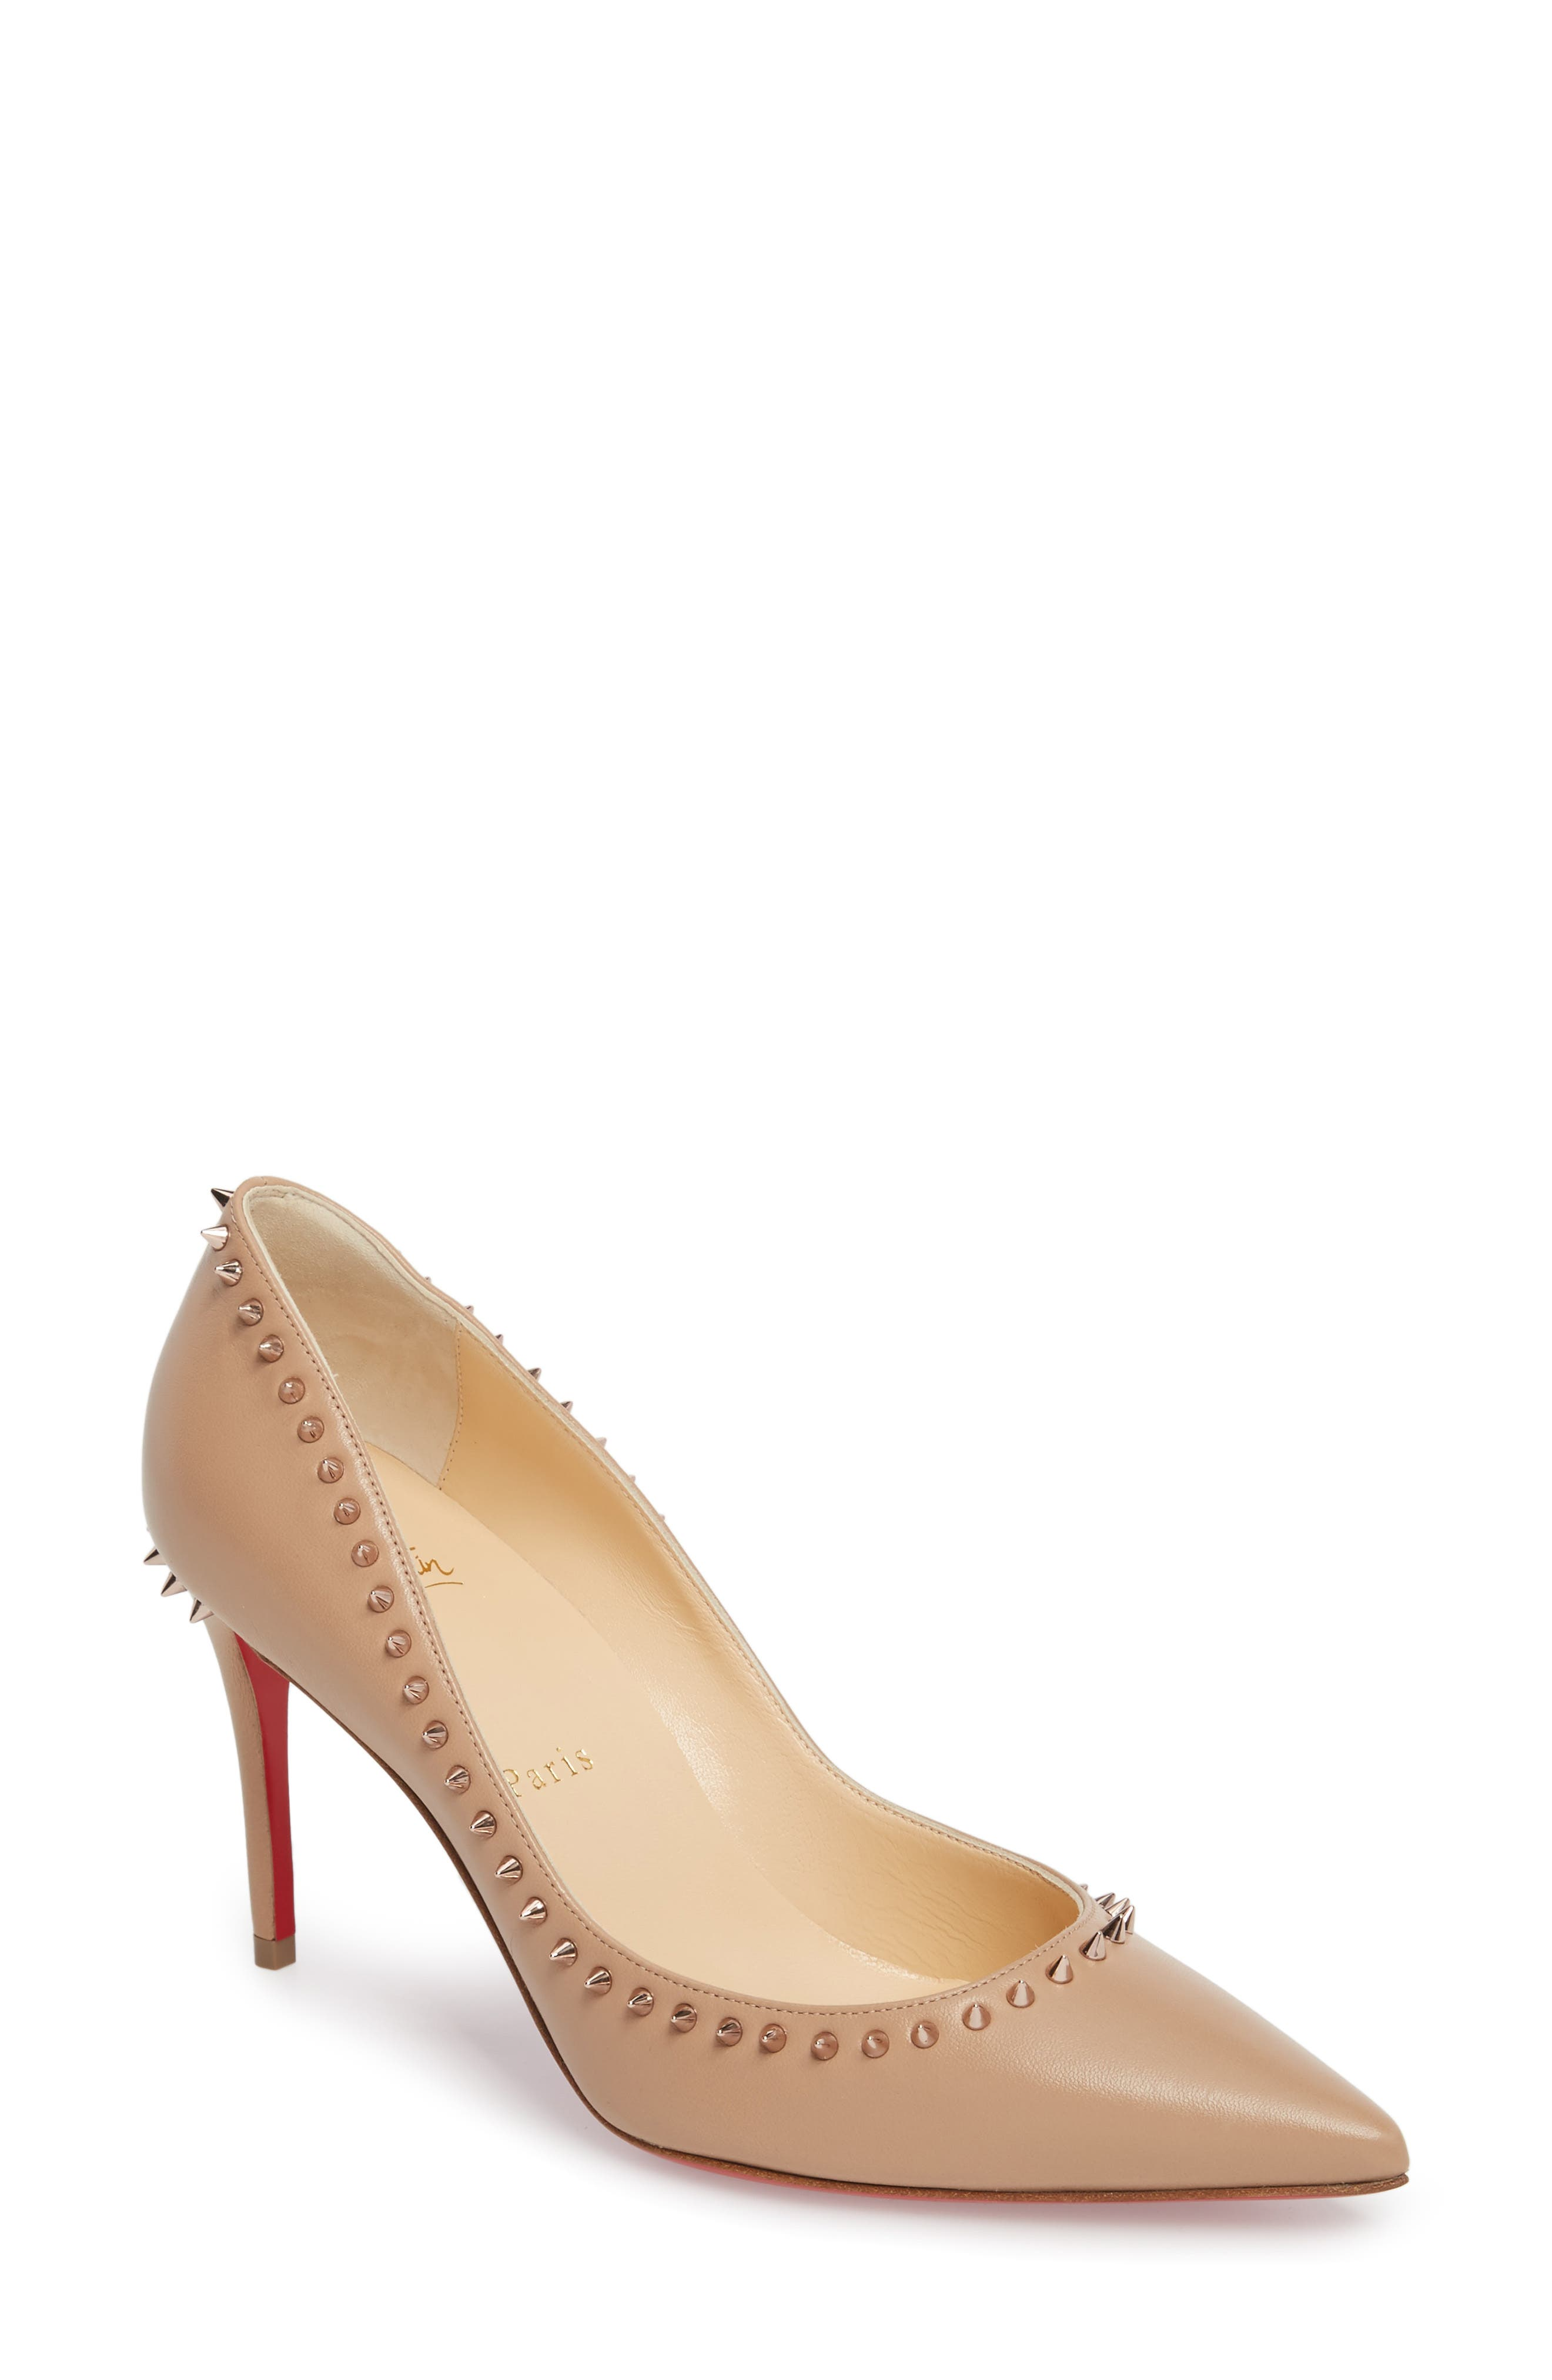 Christian Louboutin Anjalina Spiked Pointy Toe Pump (Women)